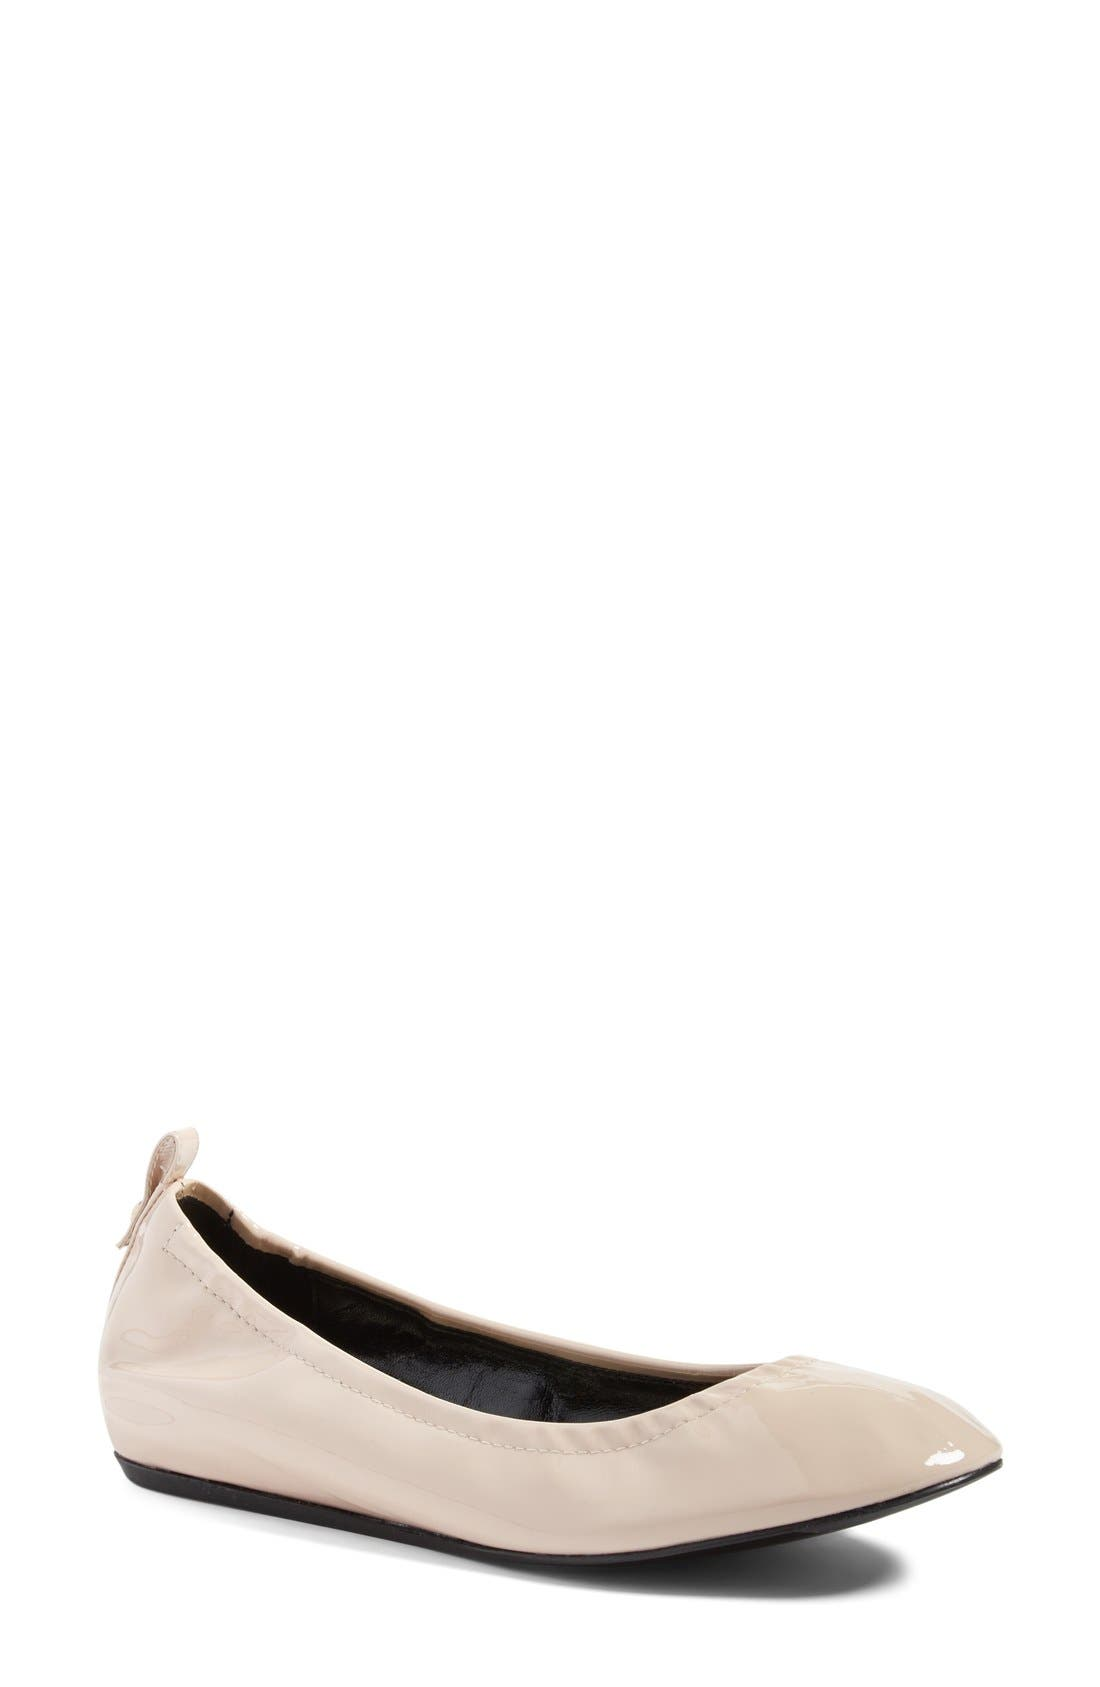 Main Image - Lanvin Smooth Leather Ballet Flat (Women)